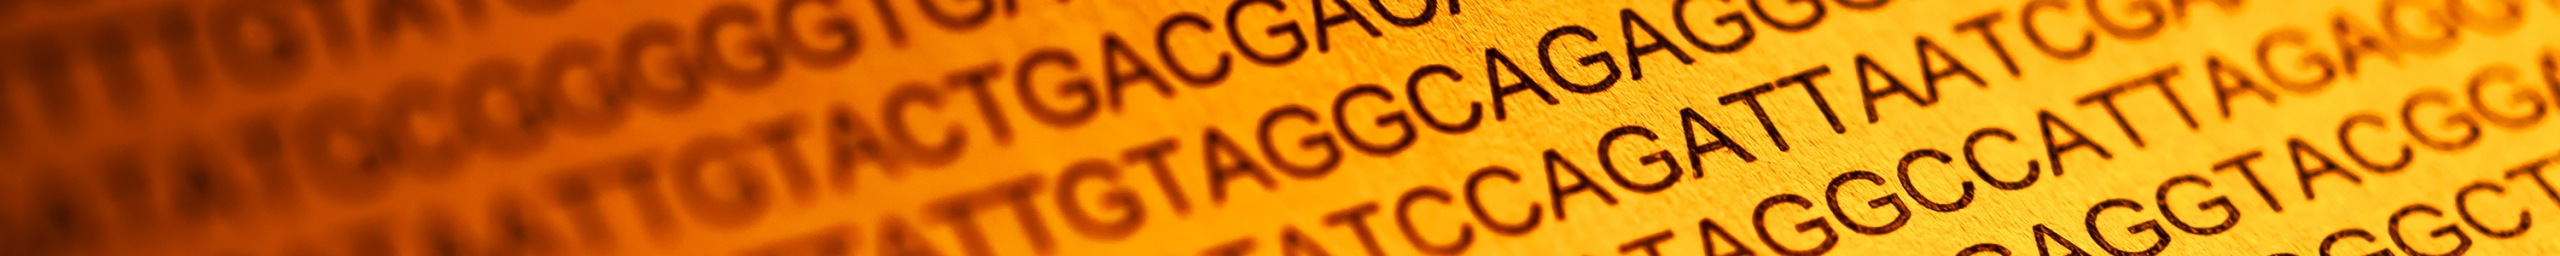 Header of Genetics and Genomics at Transmitting Science